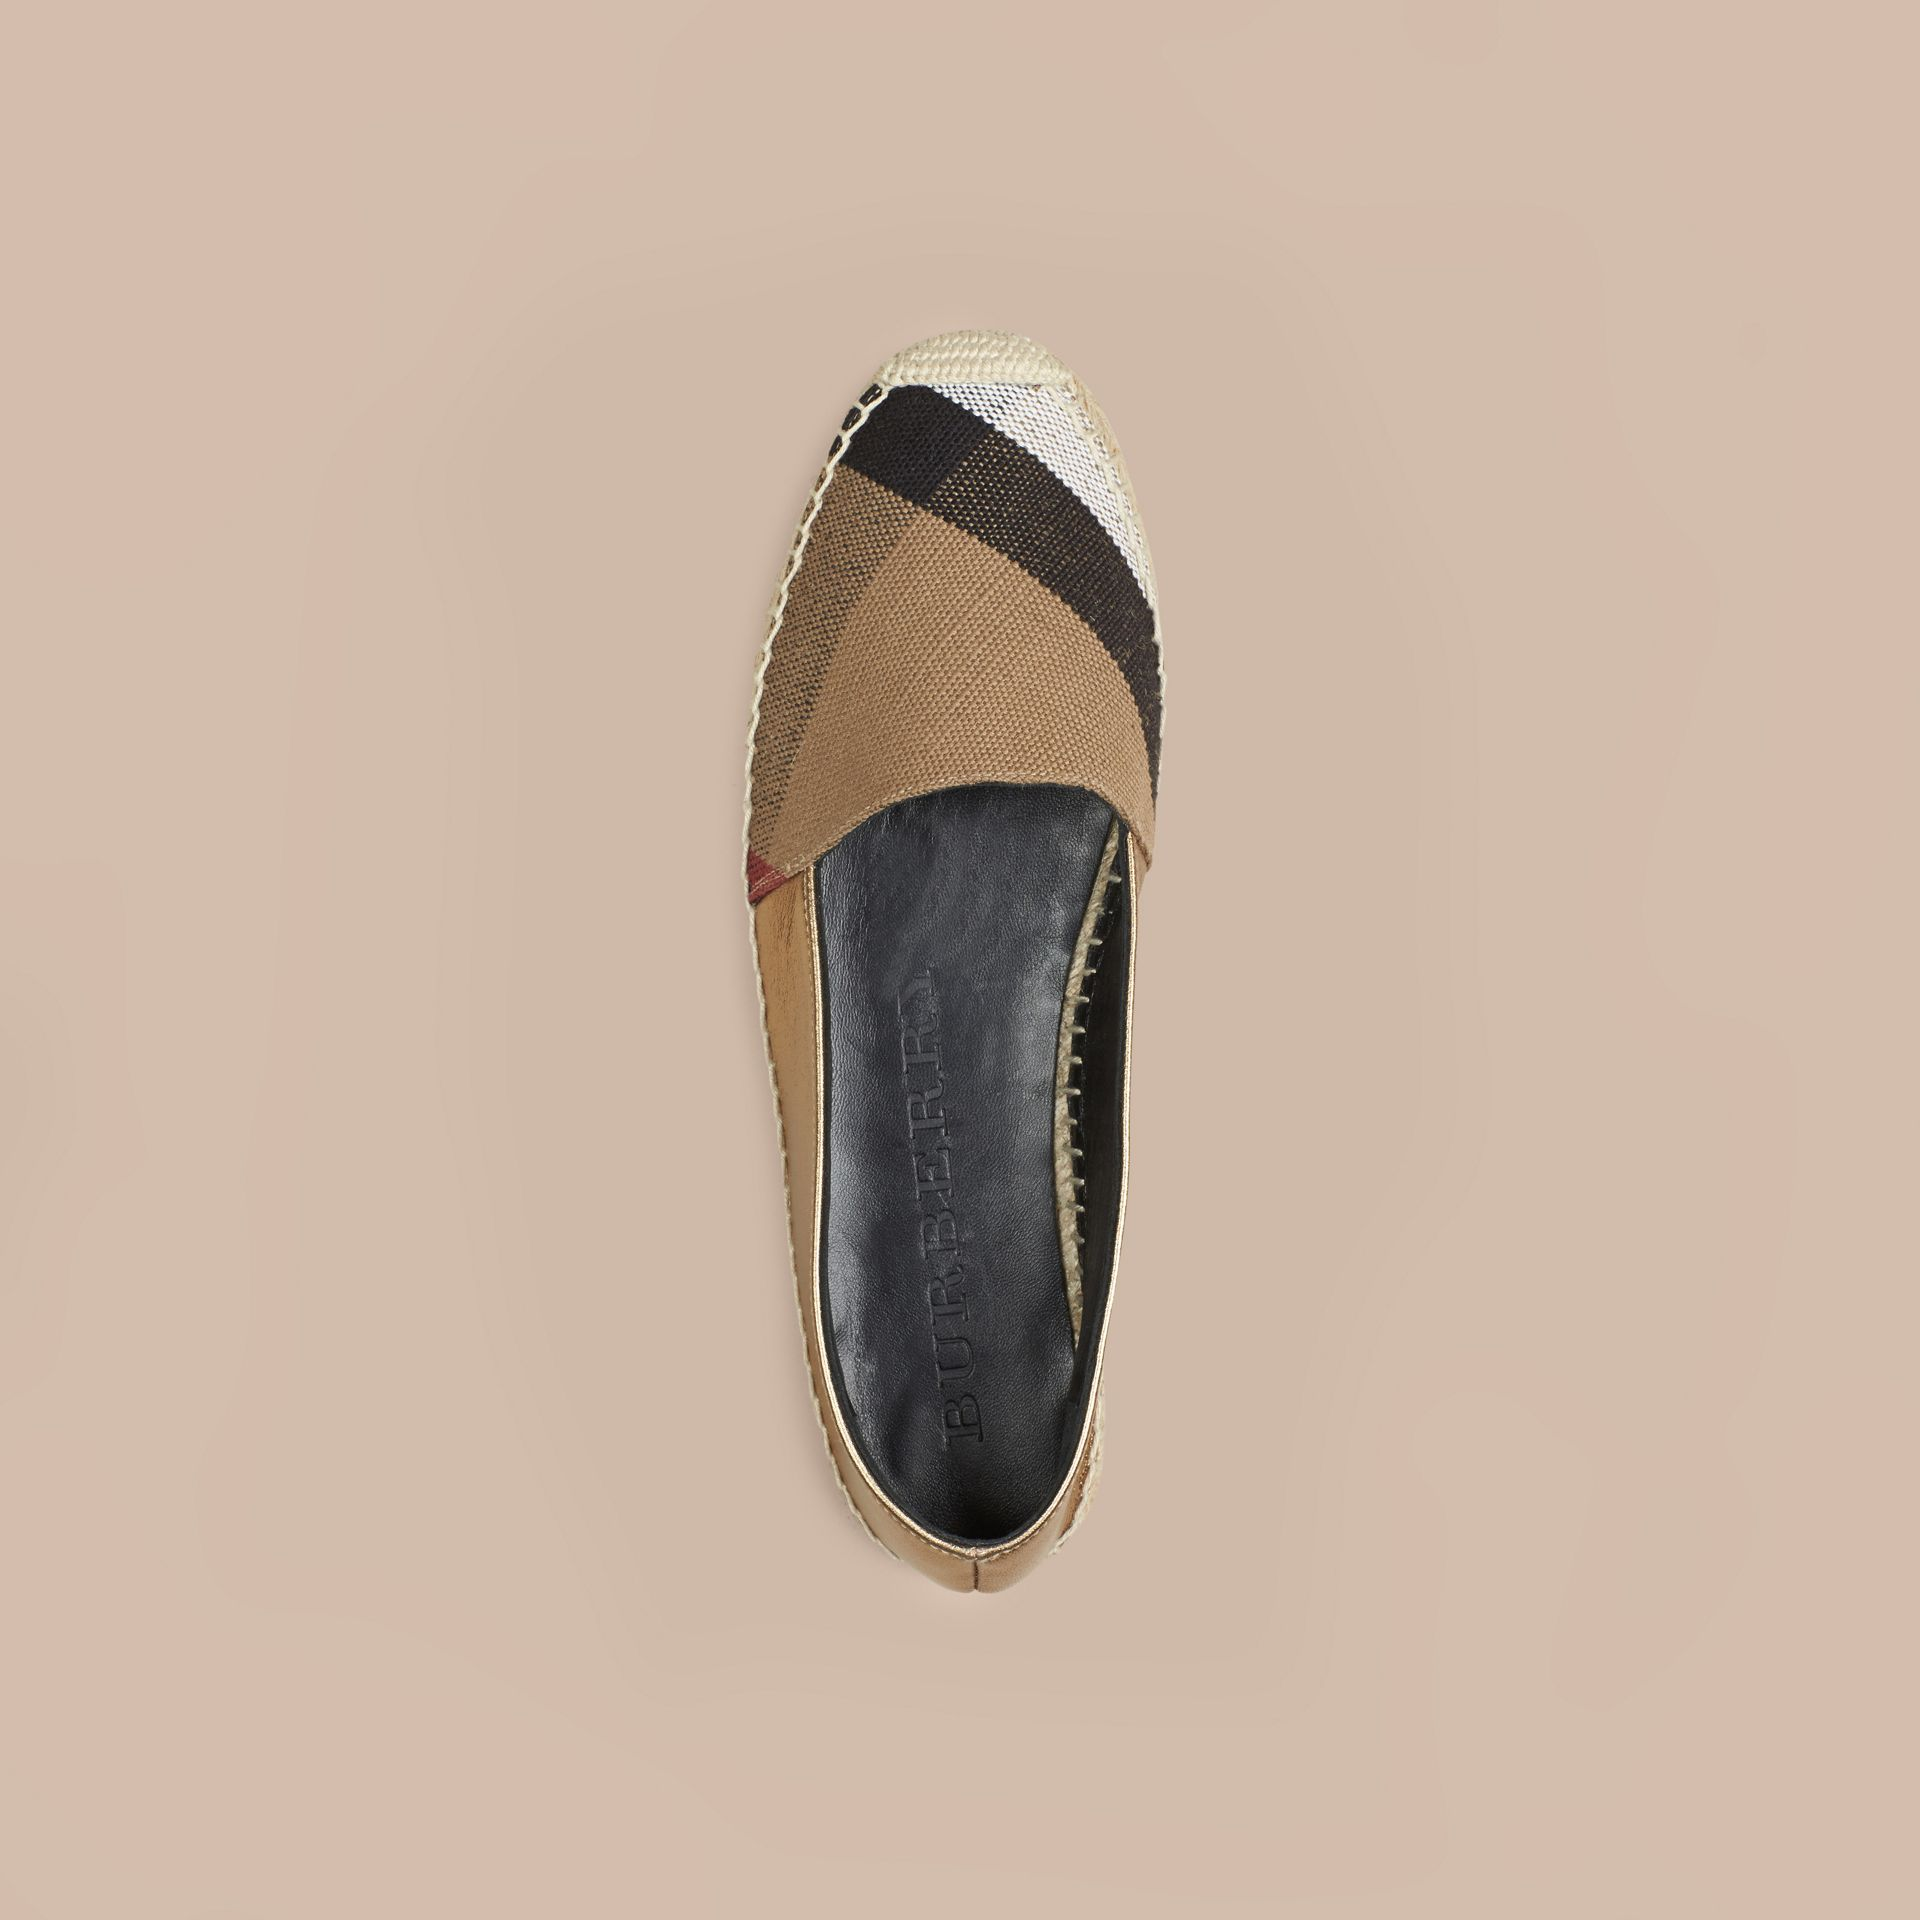 Heritage gold Check Jute Cotton and Leather Espadrilles - gallery image 3